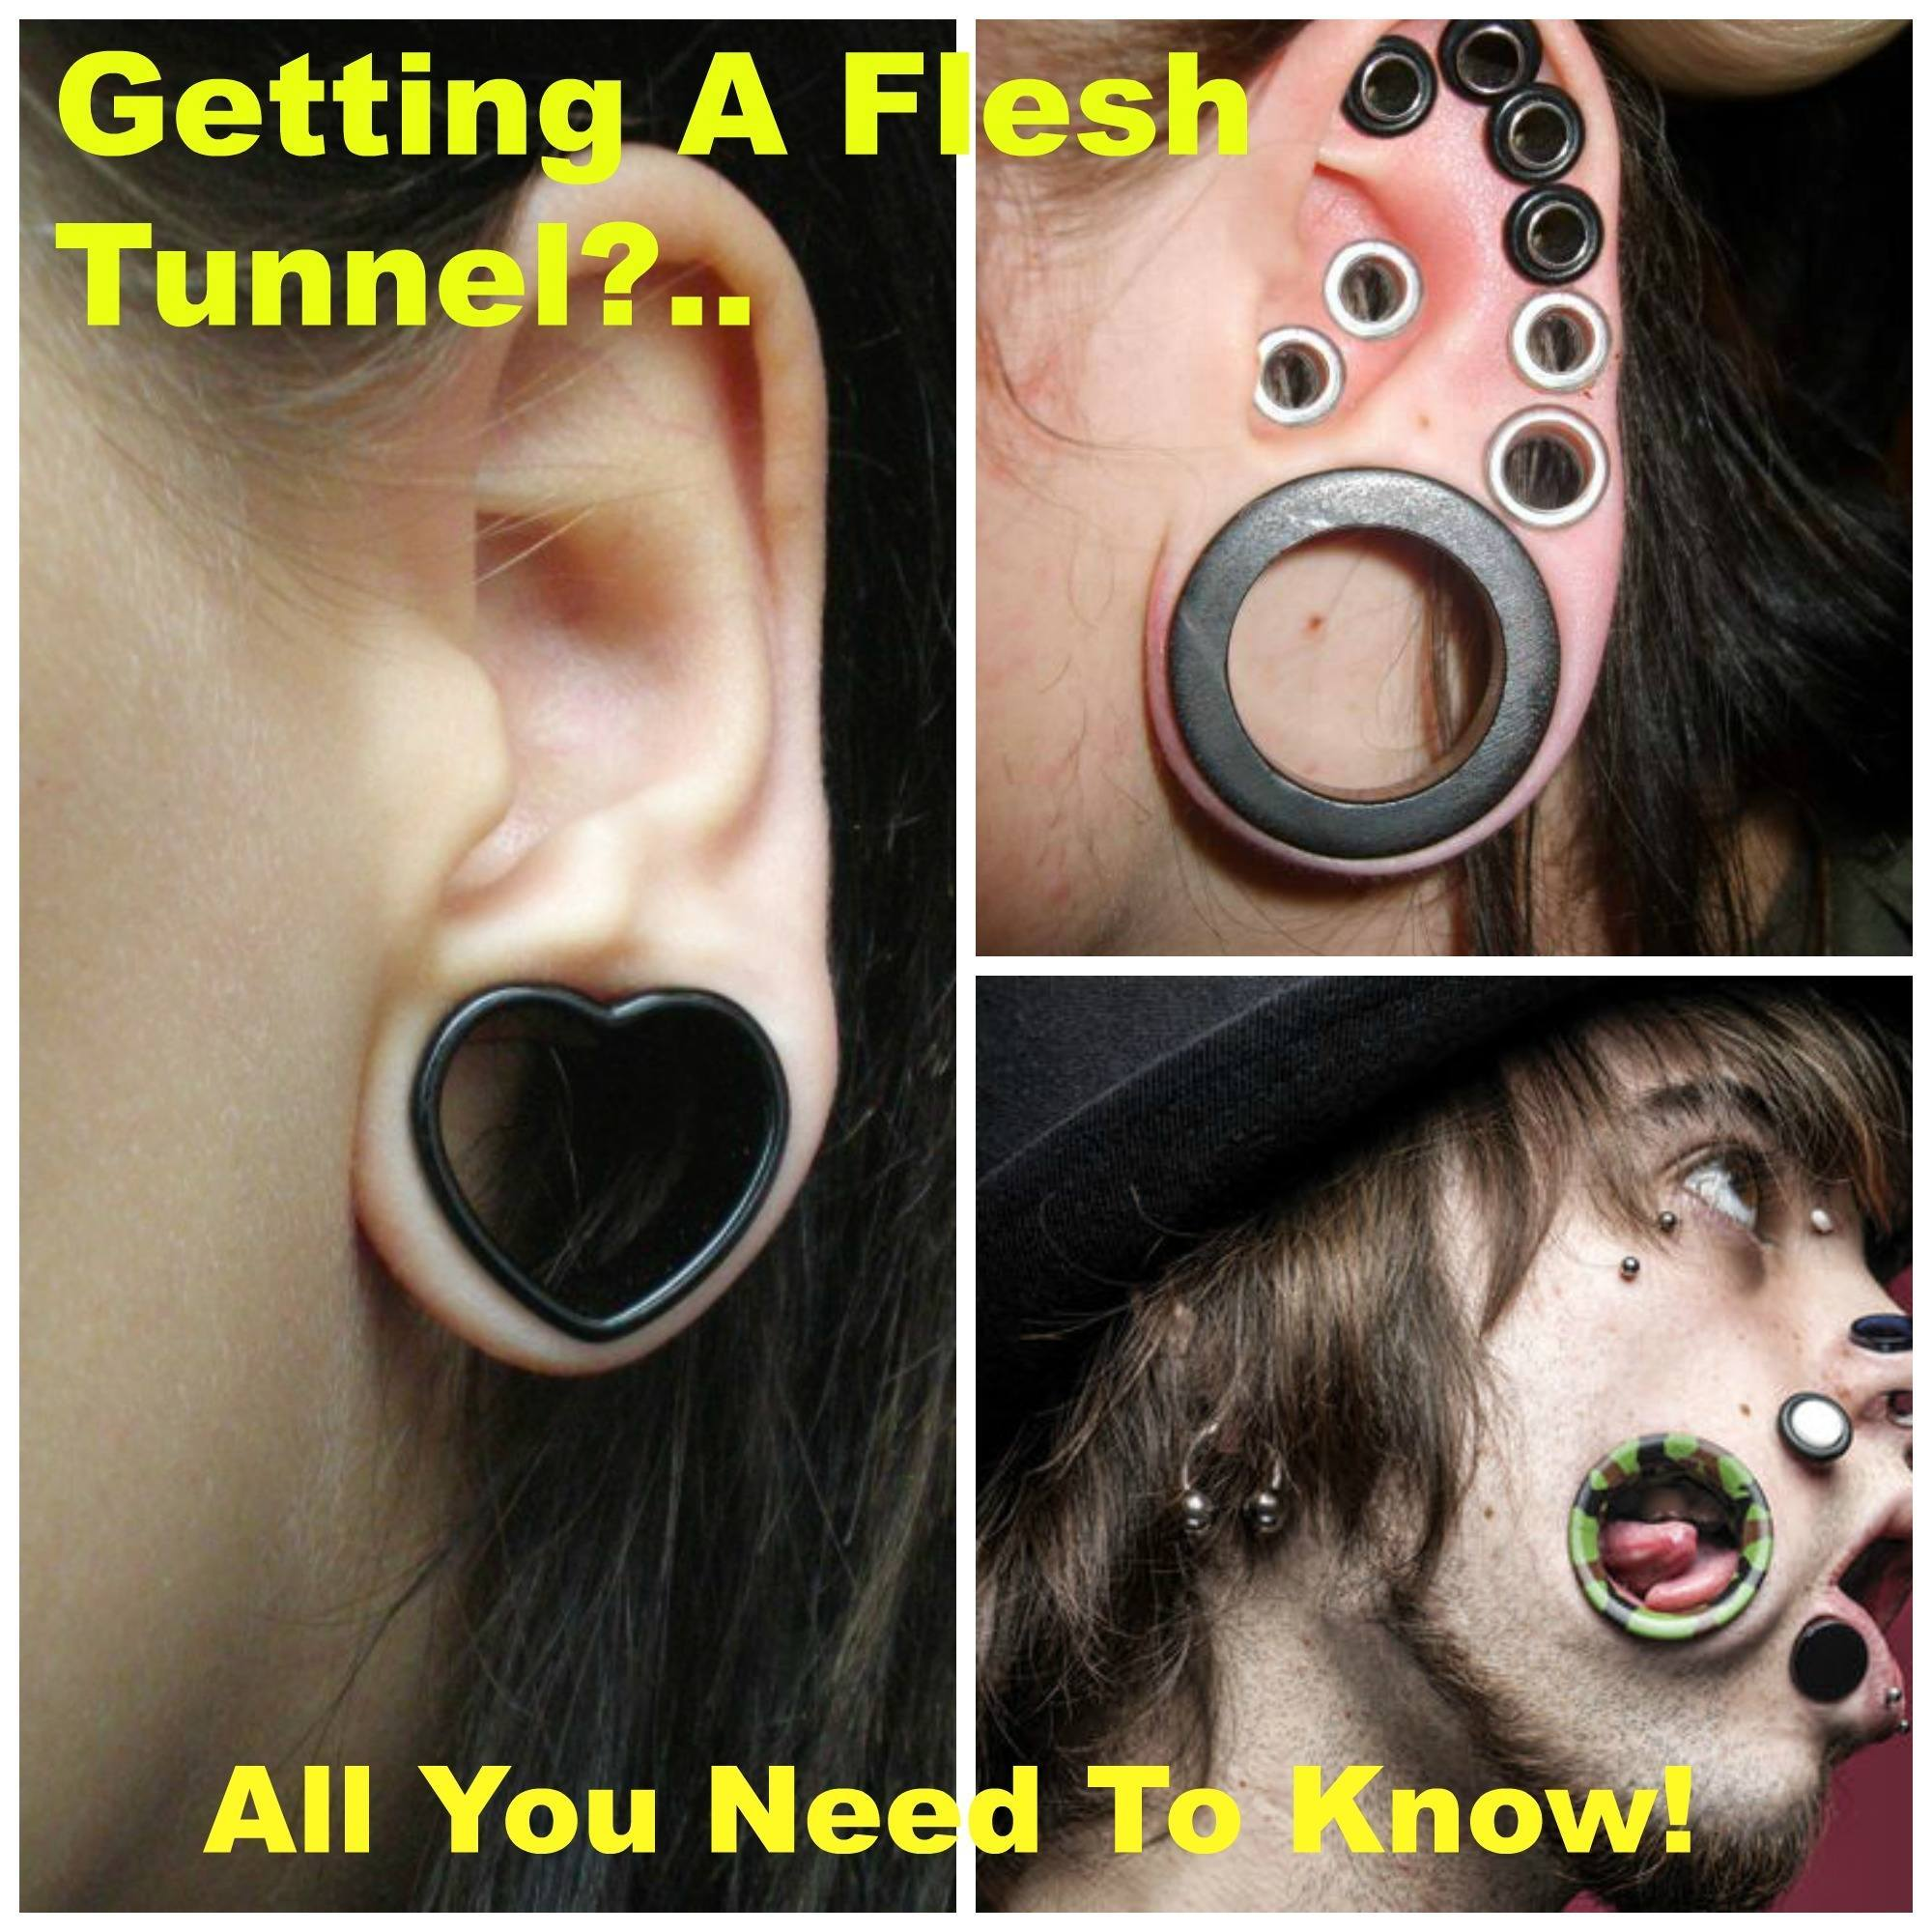 fleshtunnelCollage Getting A Flesh Tunnel - All You Need To Know